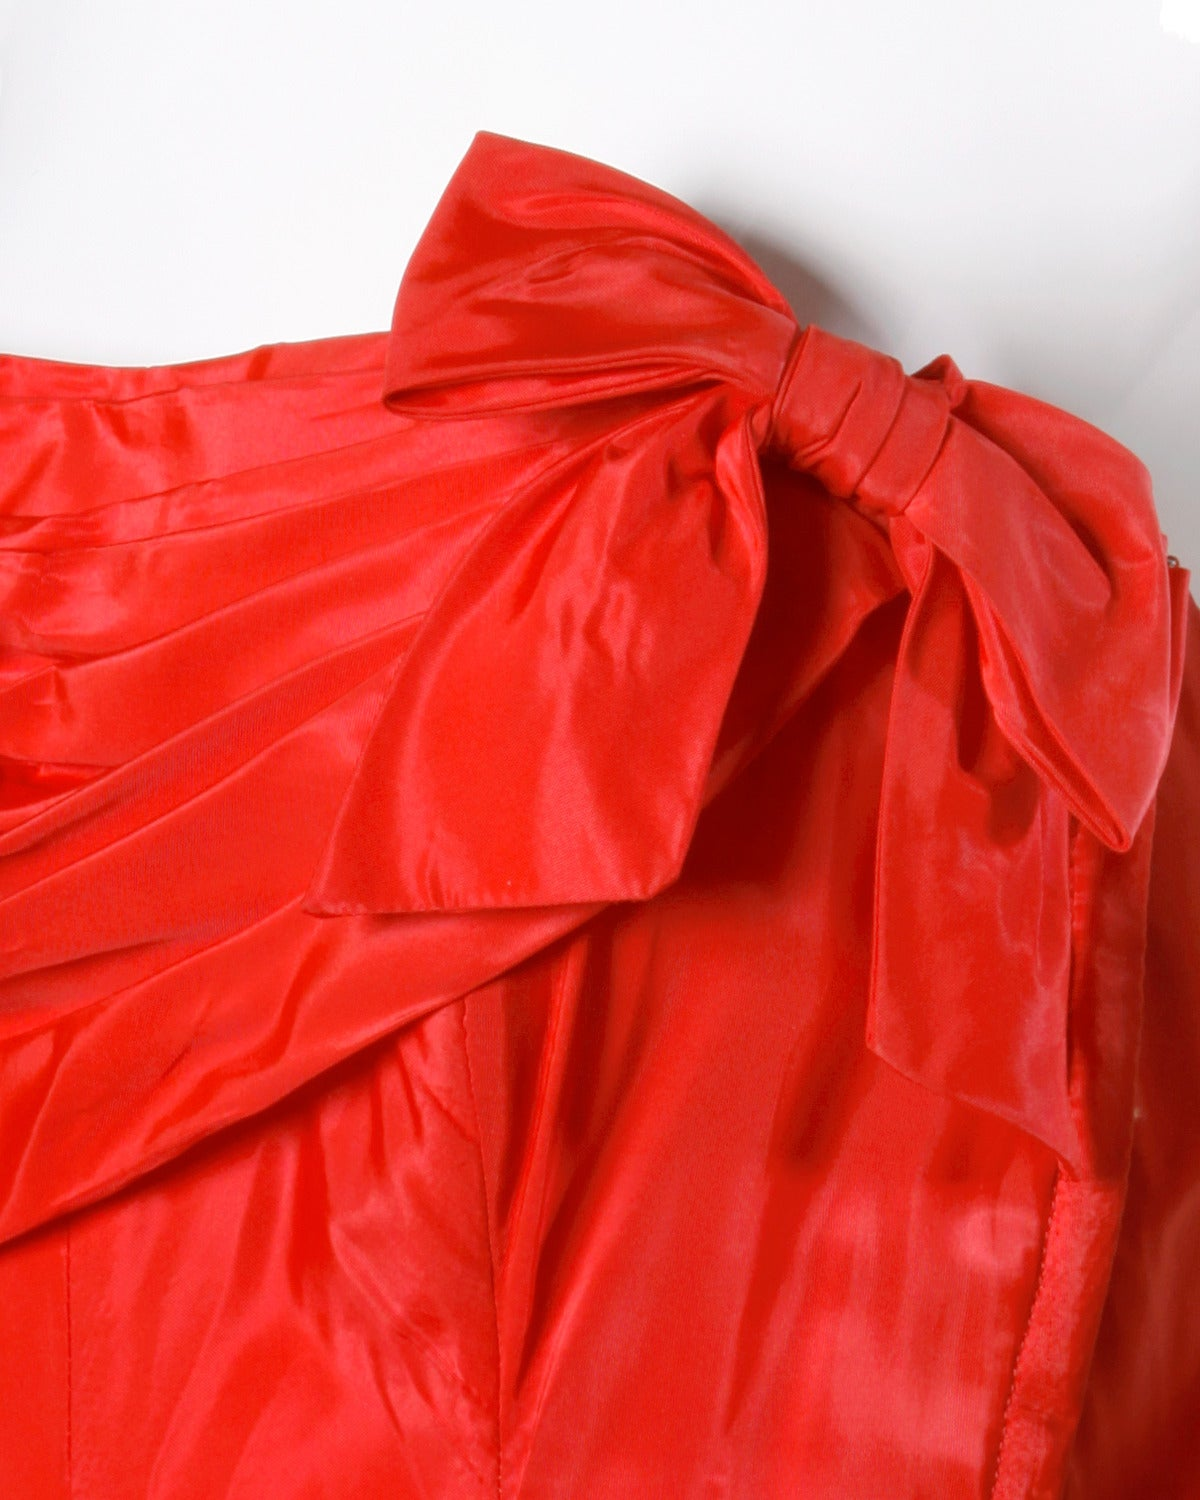 1950s Vintage Red Taffeta Full Sweep Party Dress with Bubble Hem 4